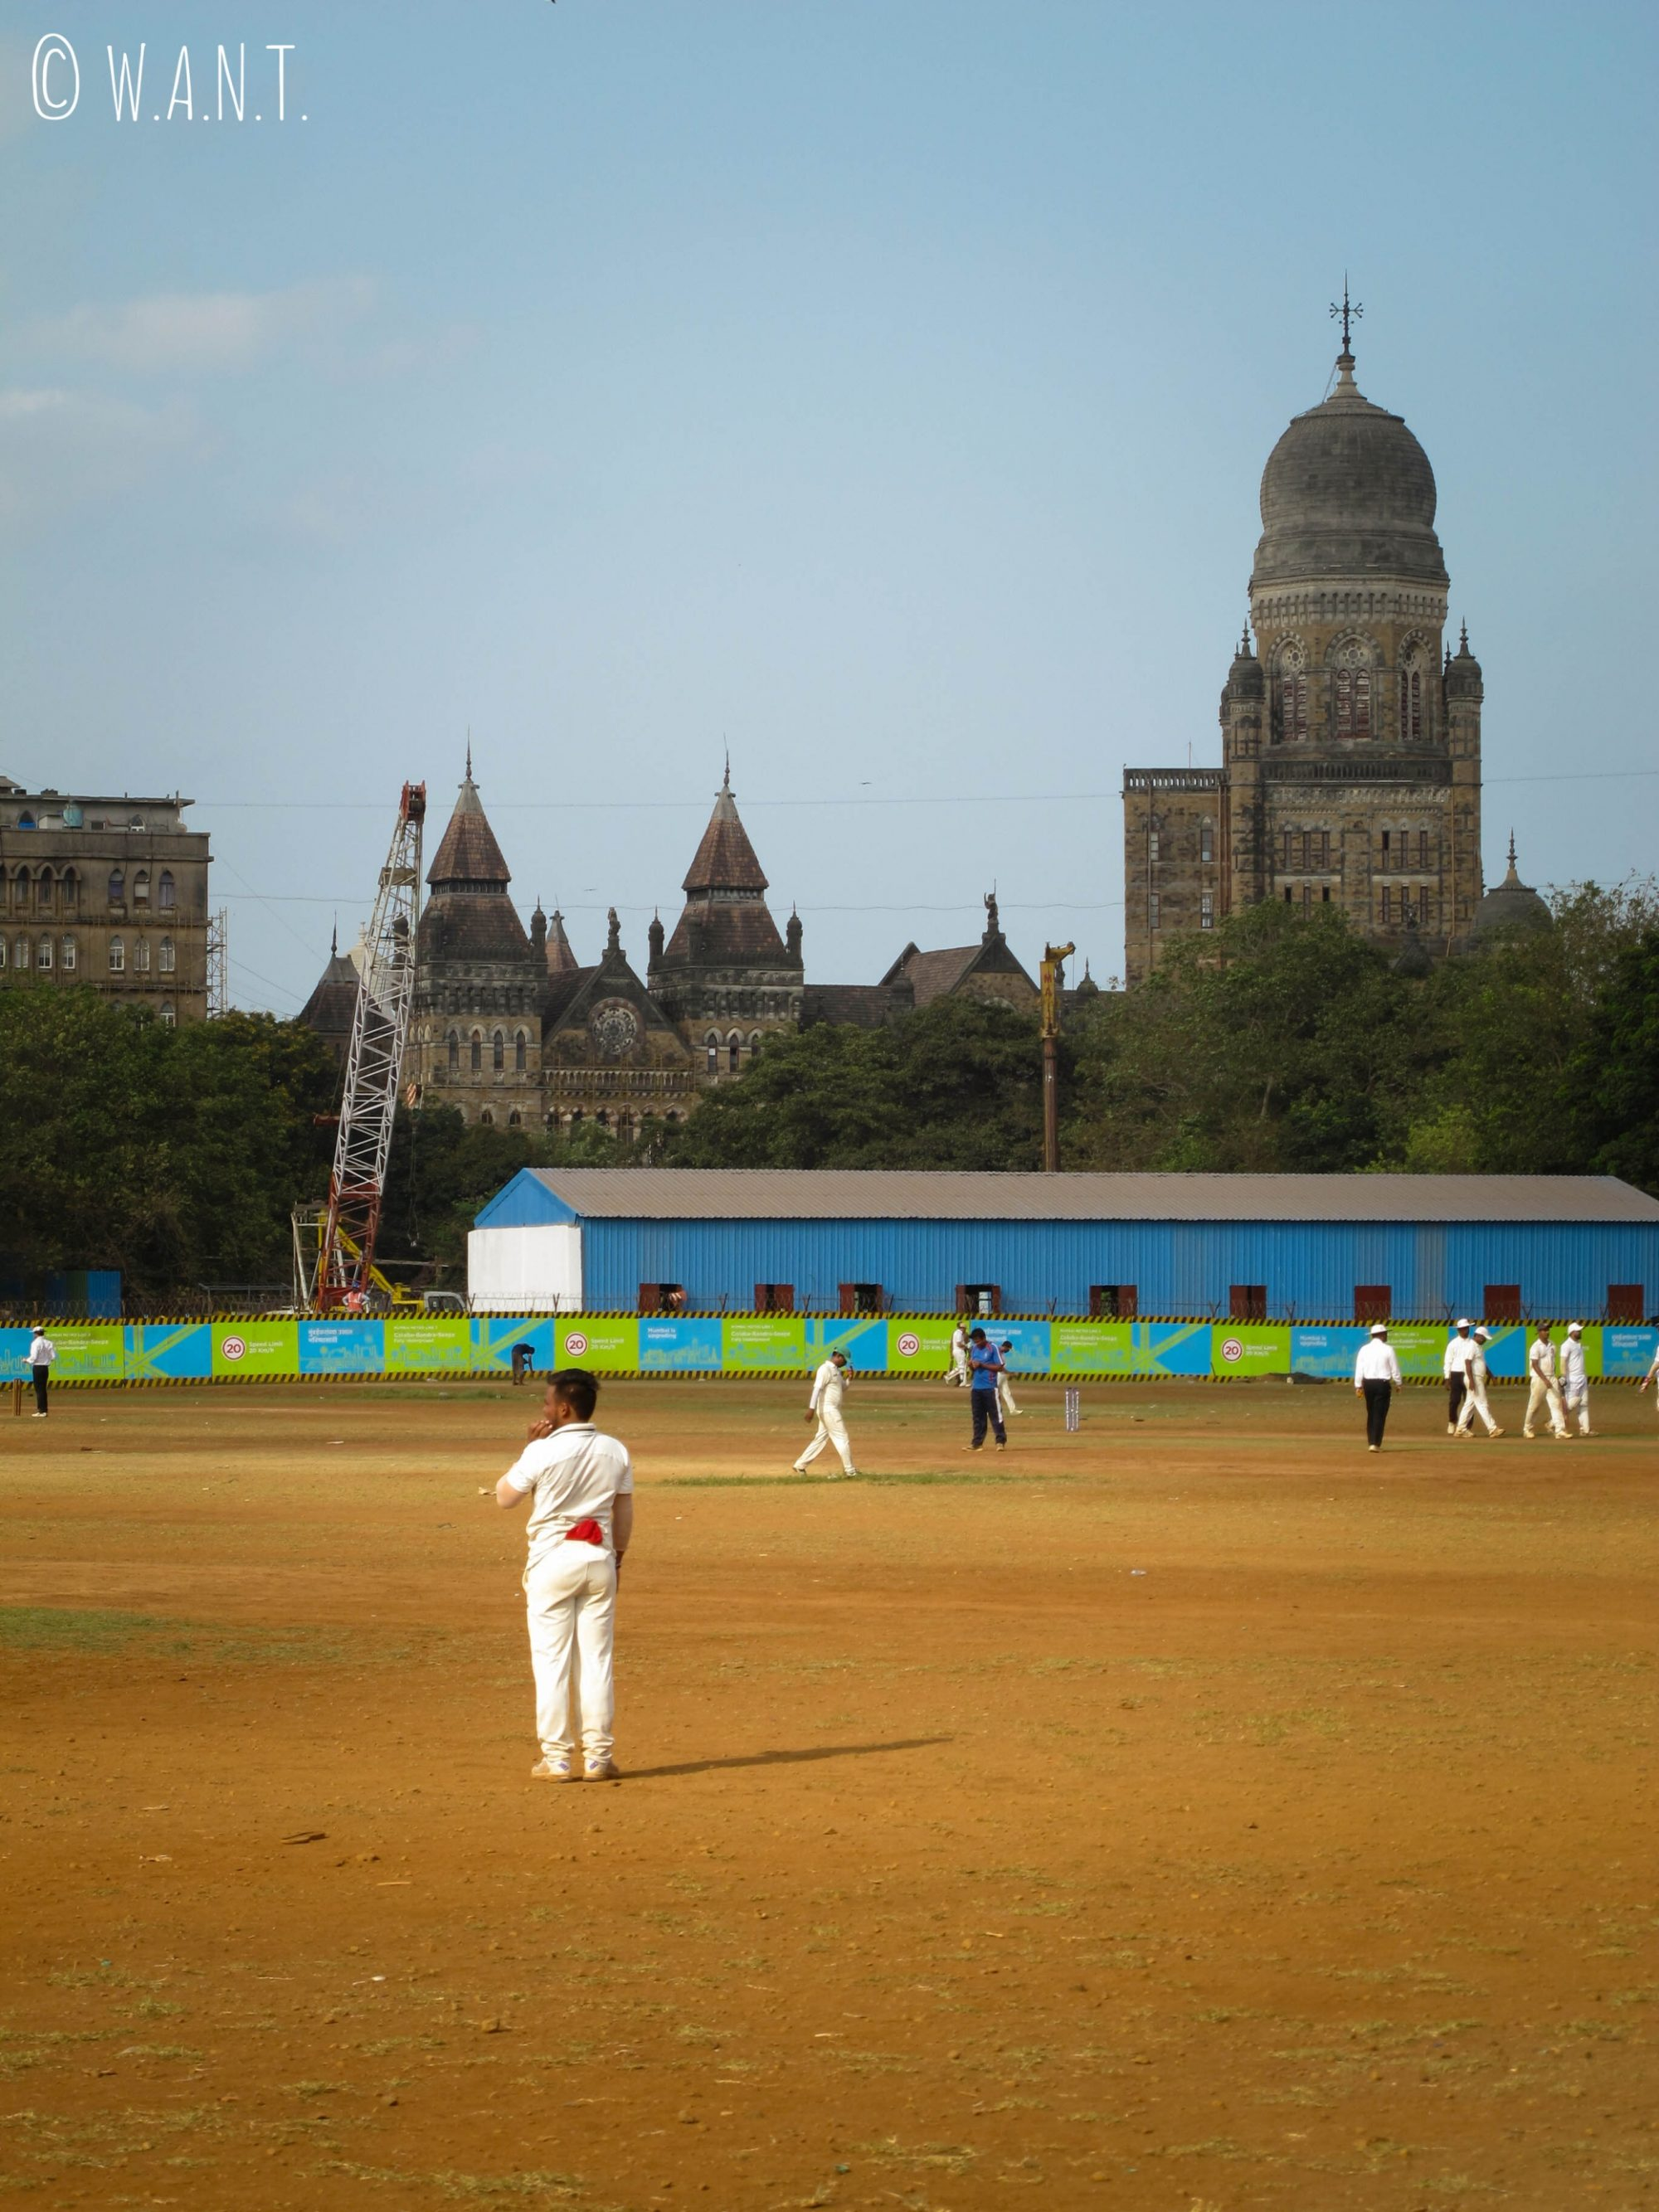 Terrain de cricket Oval Maidan